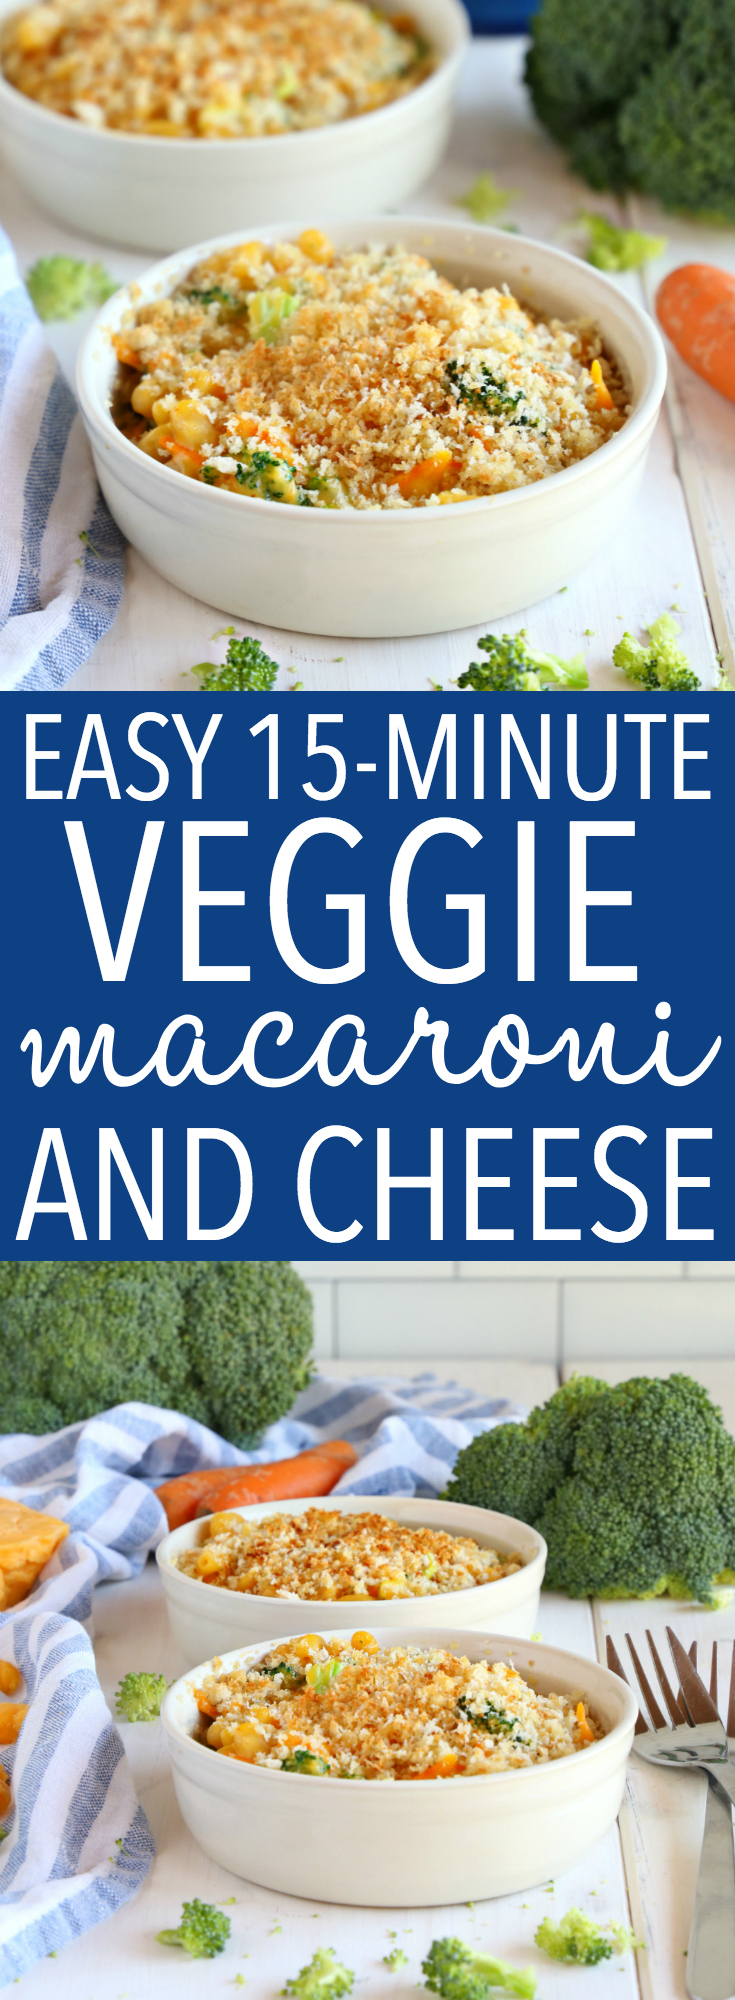 This Easy 15-Minute Vegetarian Macaroni and Cheese is the perfect quick and easy weeknight meal idea! It's packed with veggies and it's kid-friendly! Put a delicious meal on the table in 15 minutes! Recipe from thebusybaker.ca! #easy #vegetarian #veggie #macandcheese #healthy #healthymacandcheese #quick #family #meal #recipe #hiddenveggies #kidfriendly #macaroni #pasta #onepot #onepan via @busybakerblog